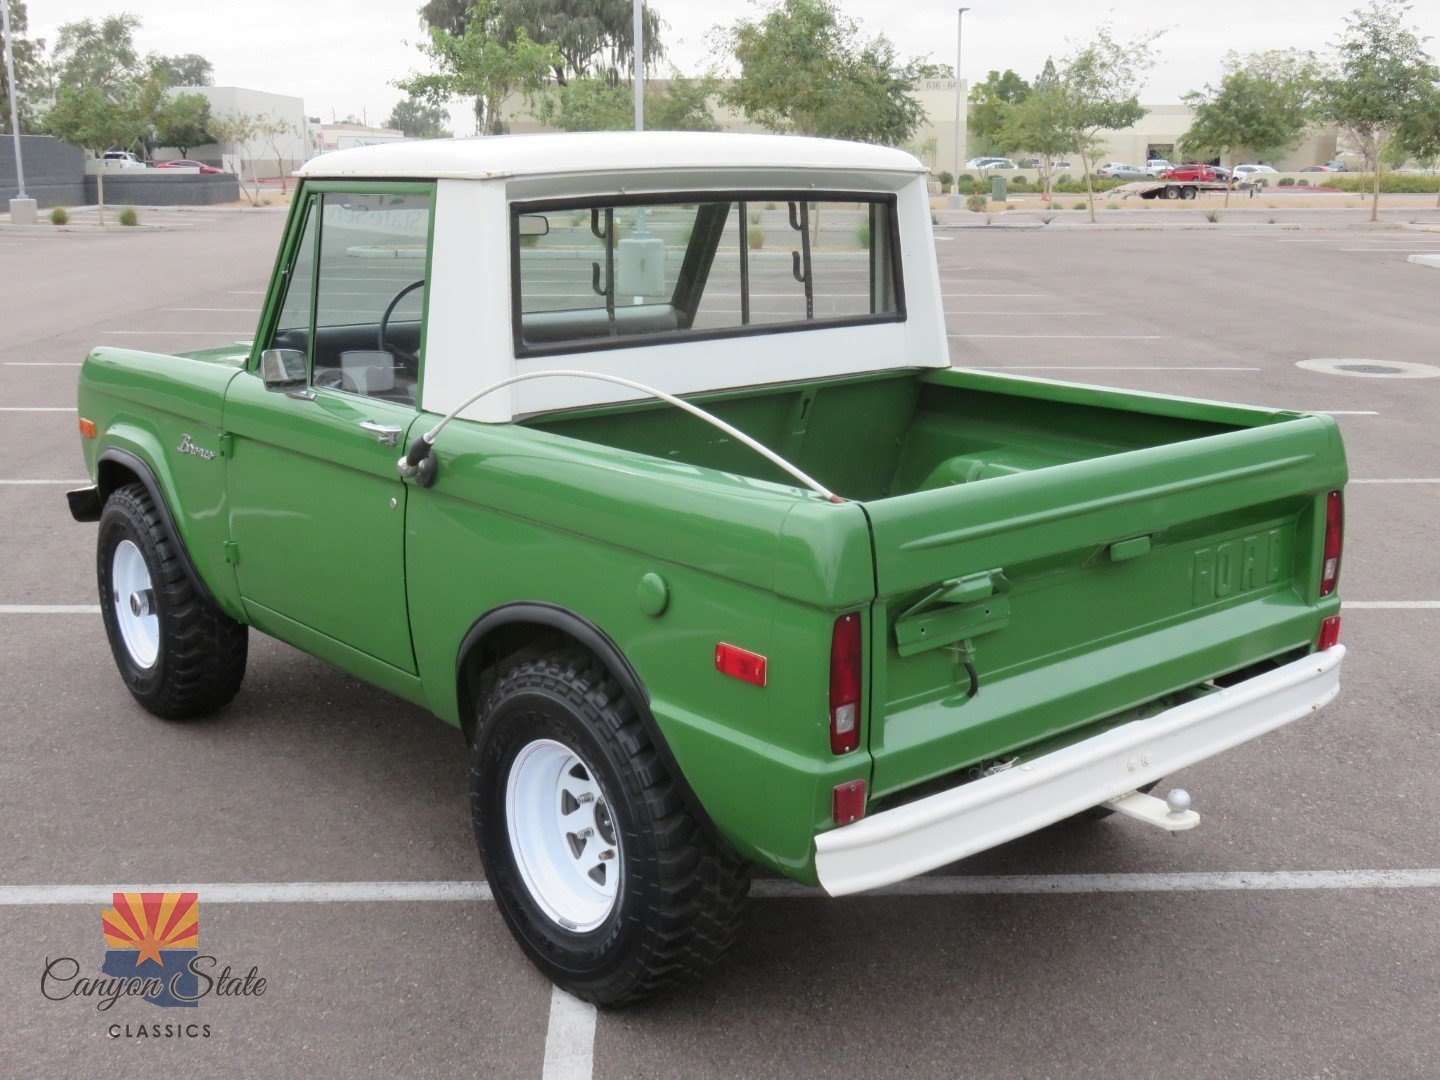 1970 Ford Bronco   Canyon State Classics